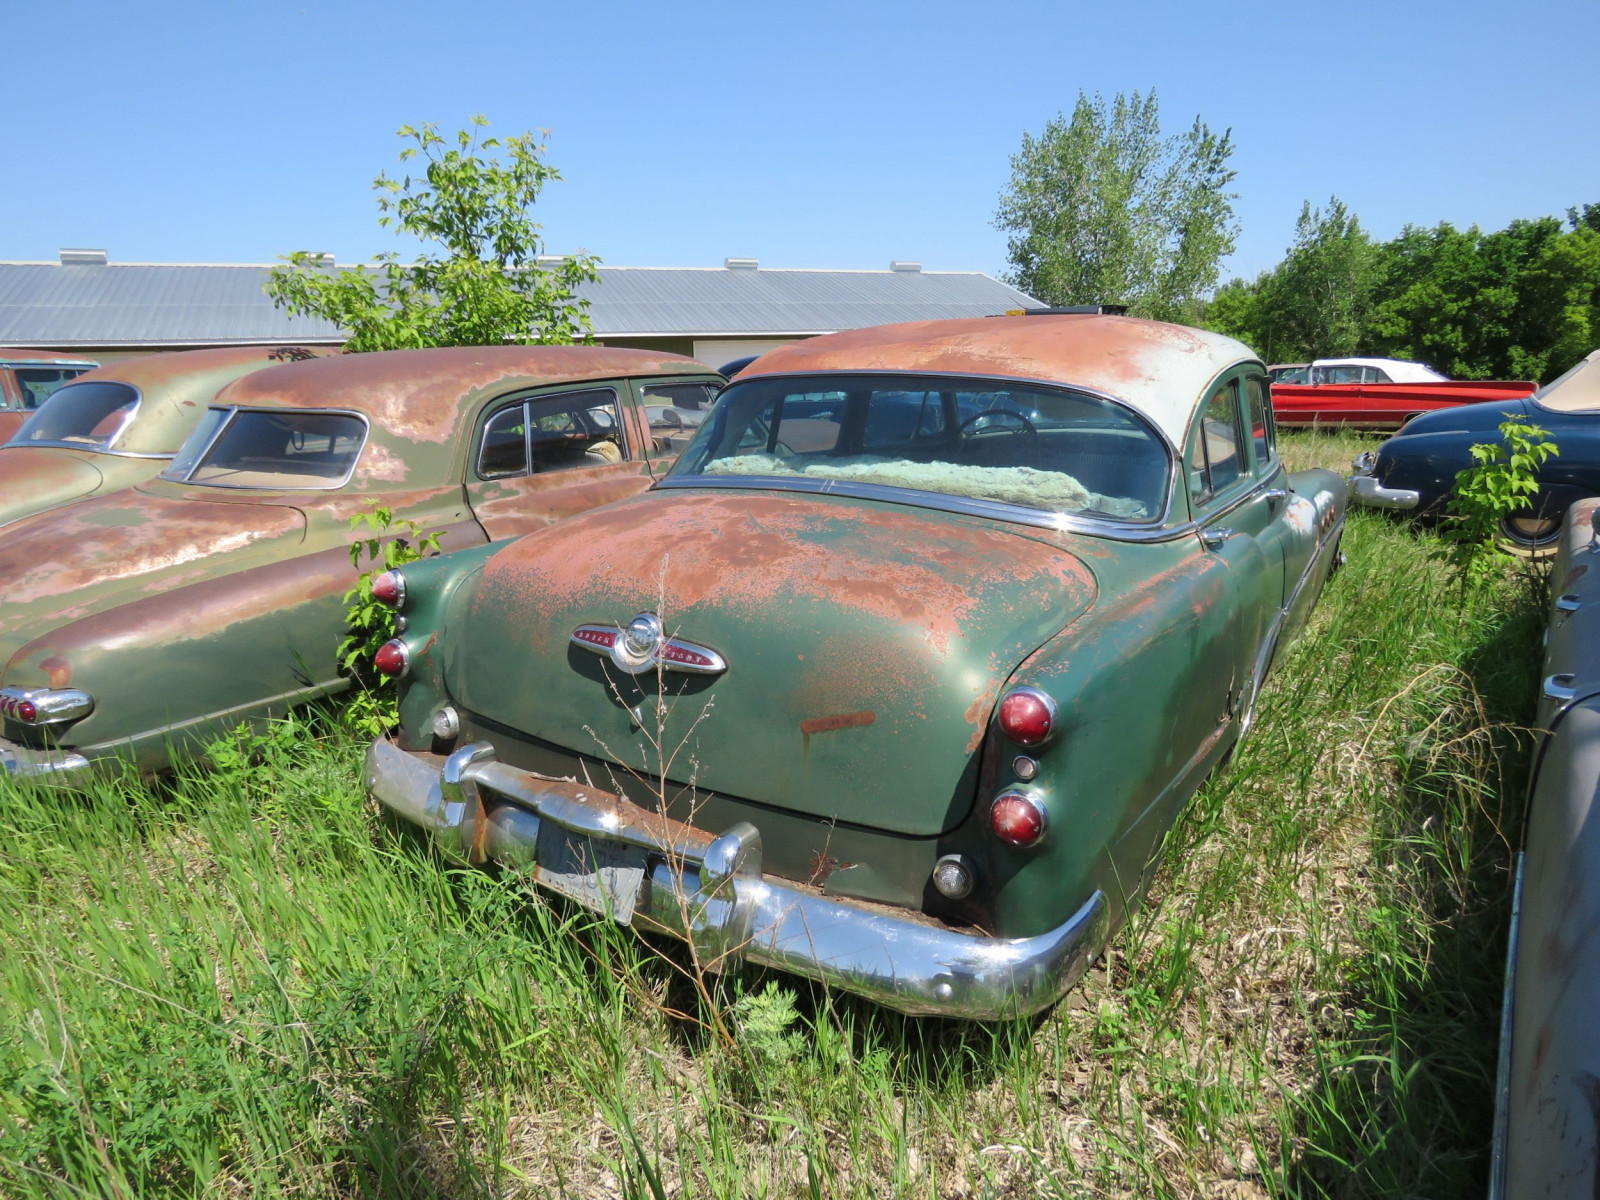 1953 Buick 8 4dr Sedan for Project or parts - Image 3